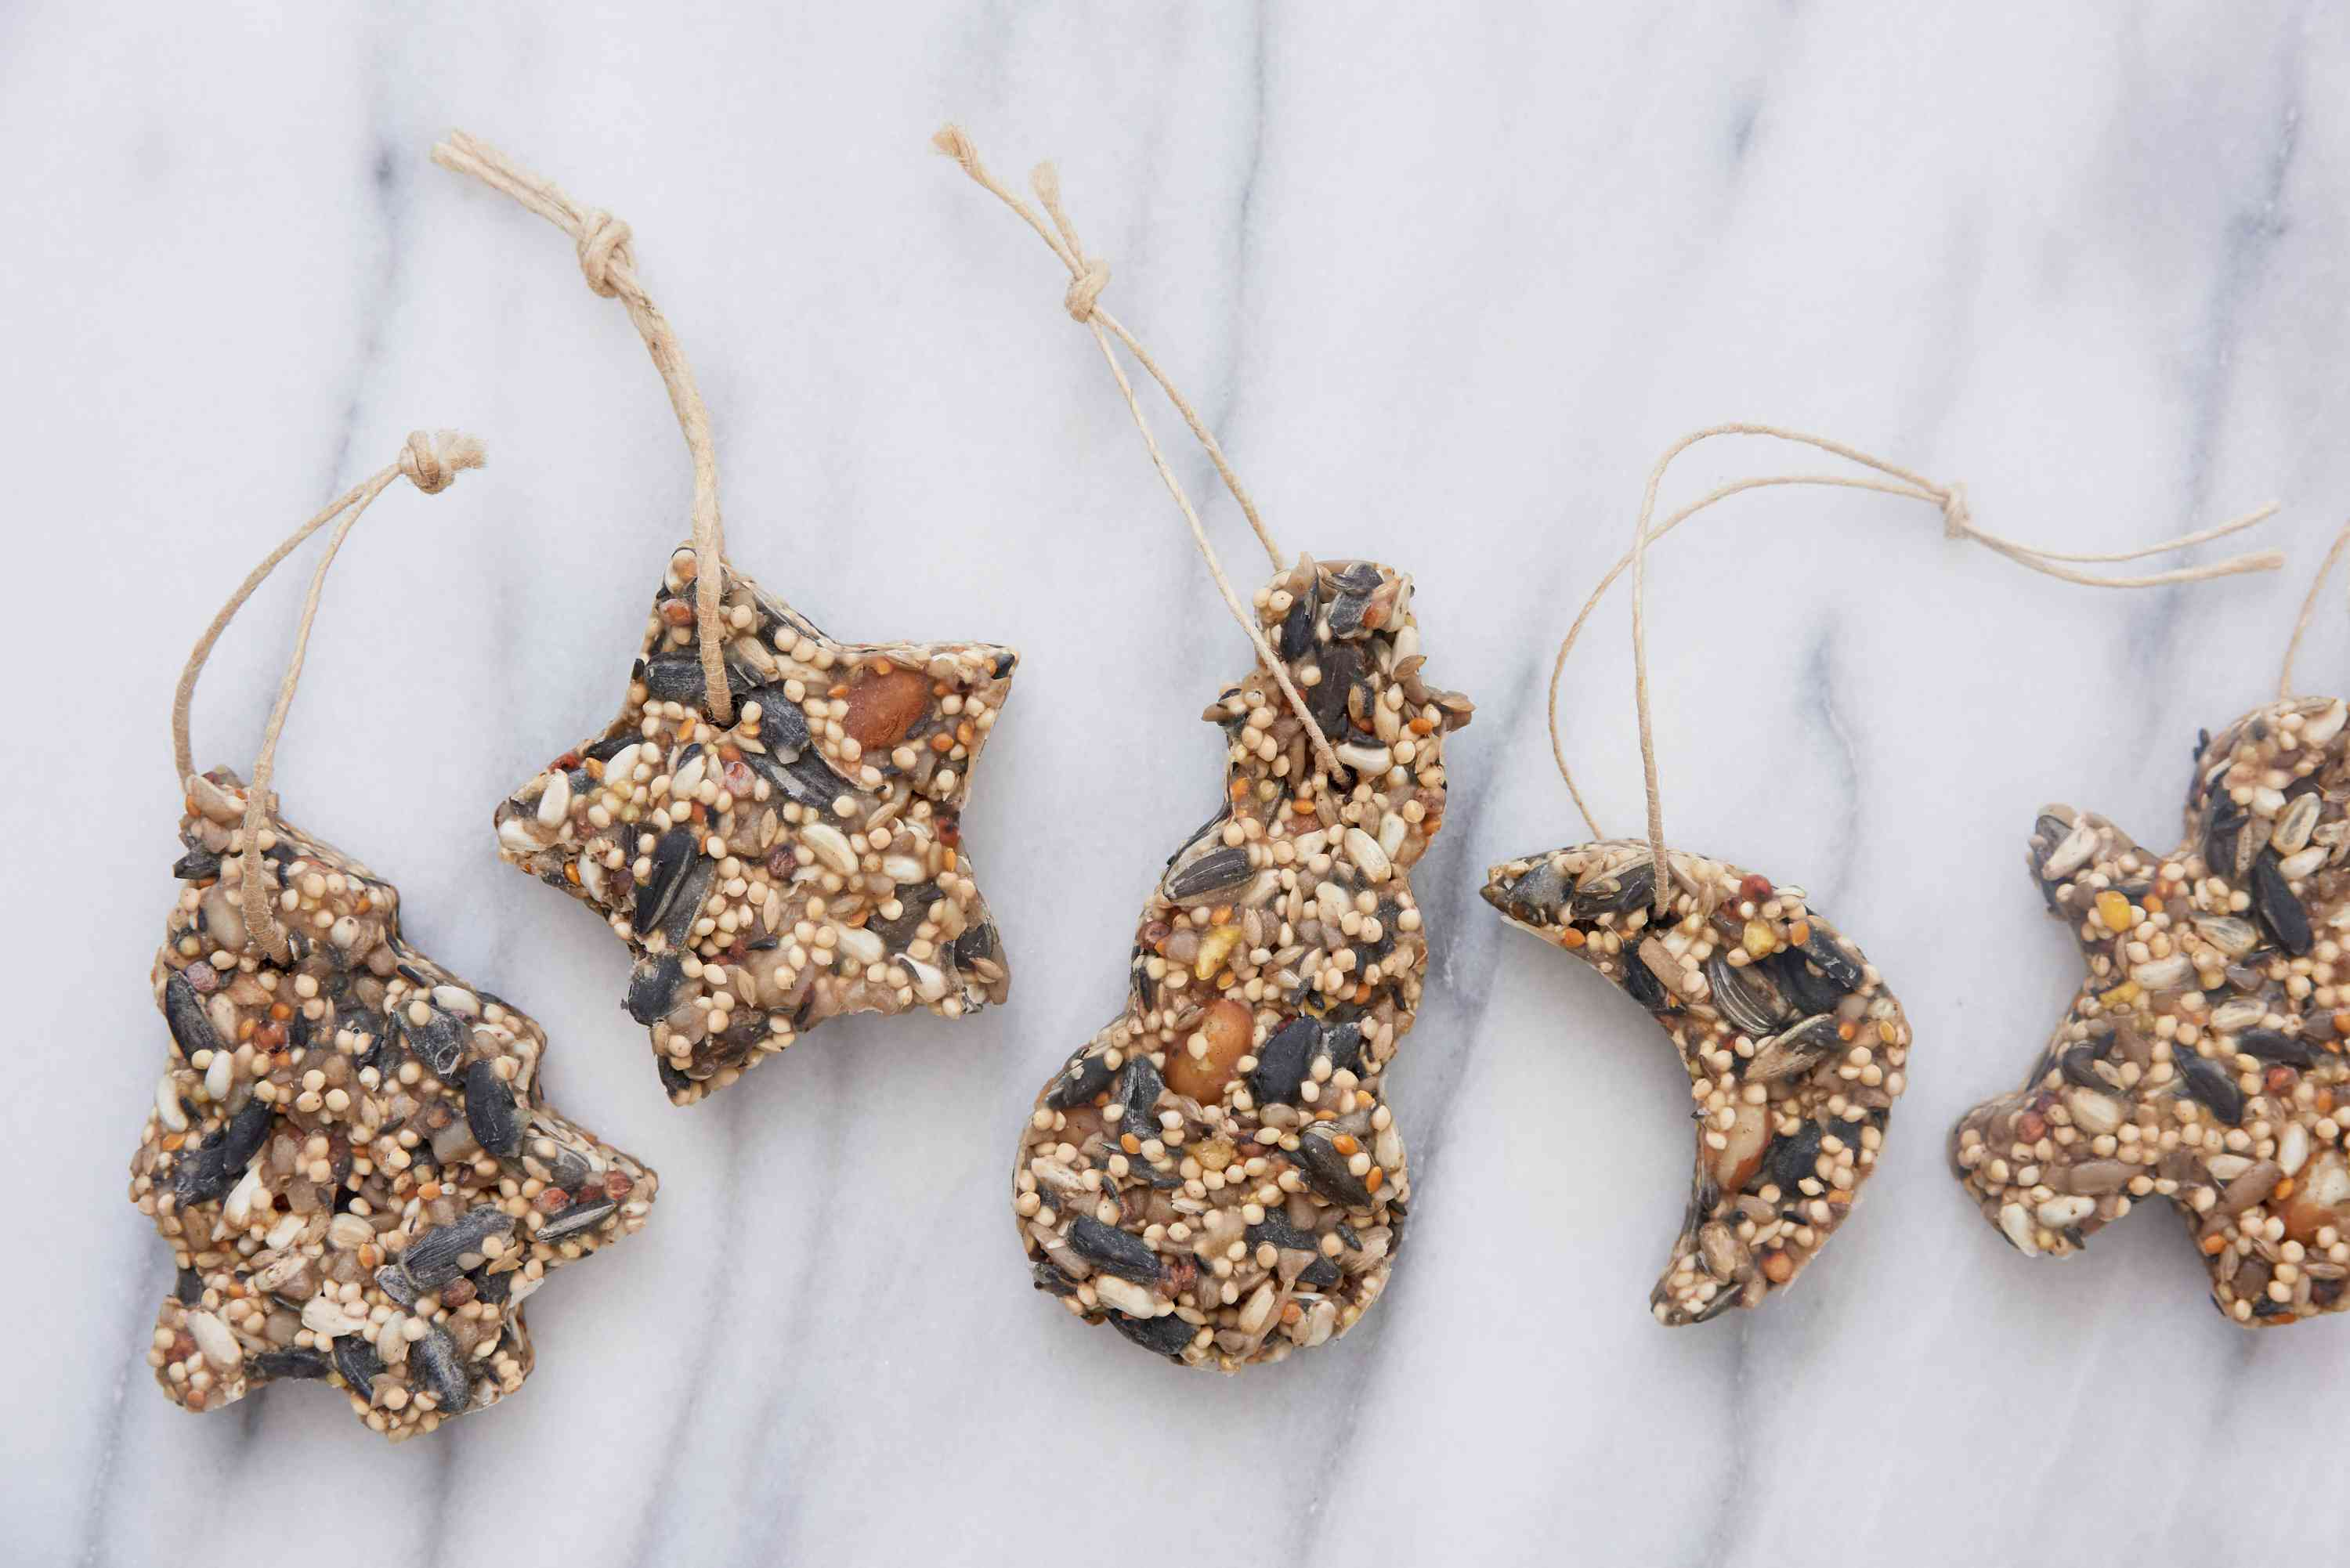 finished bird seed ornaments